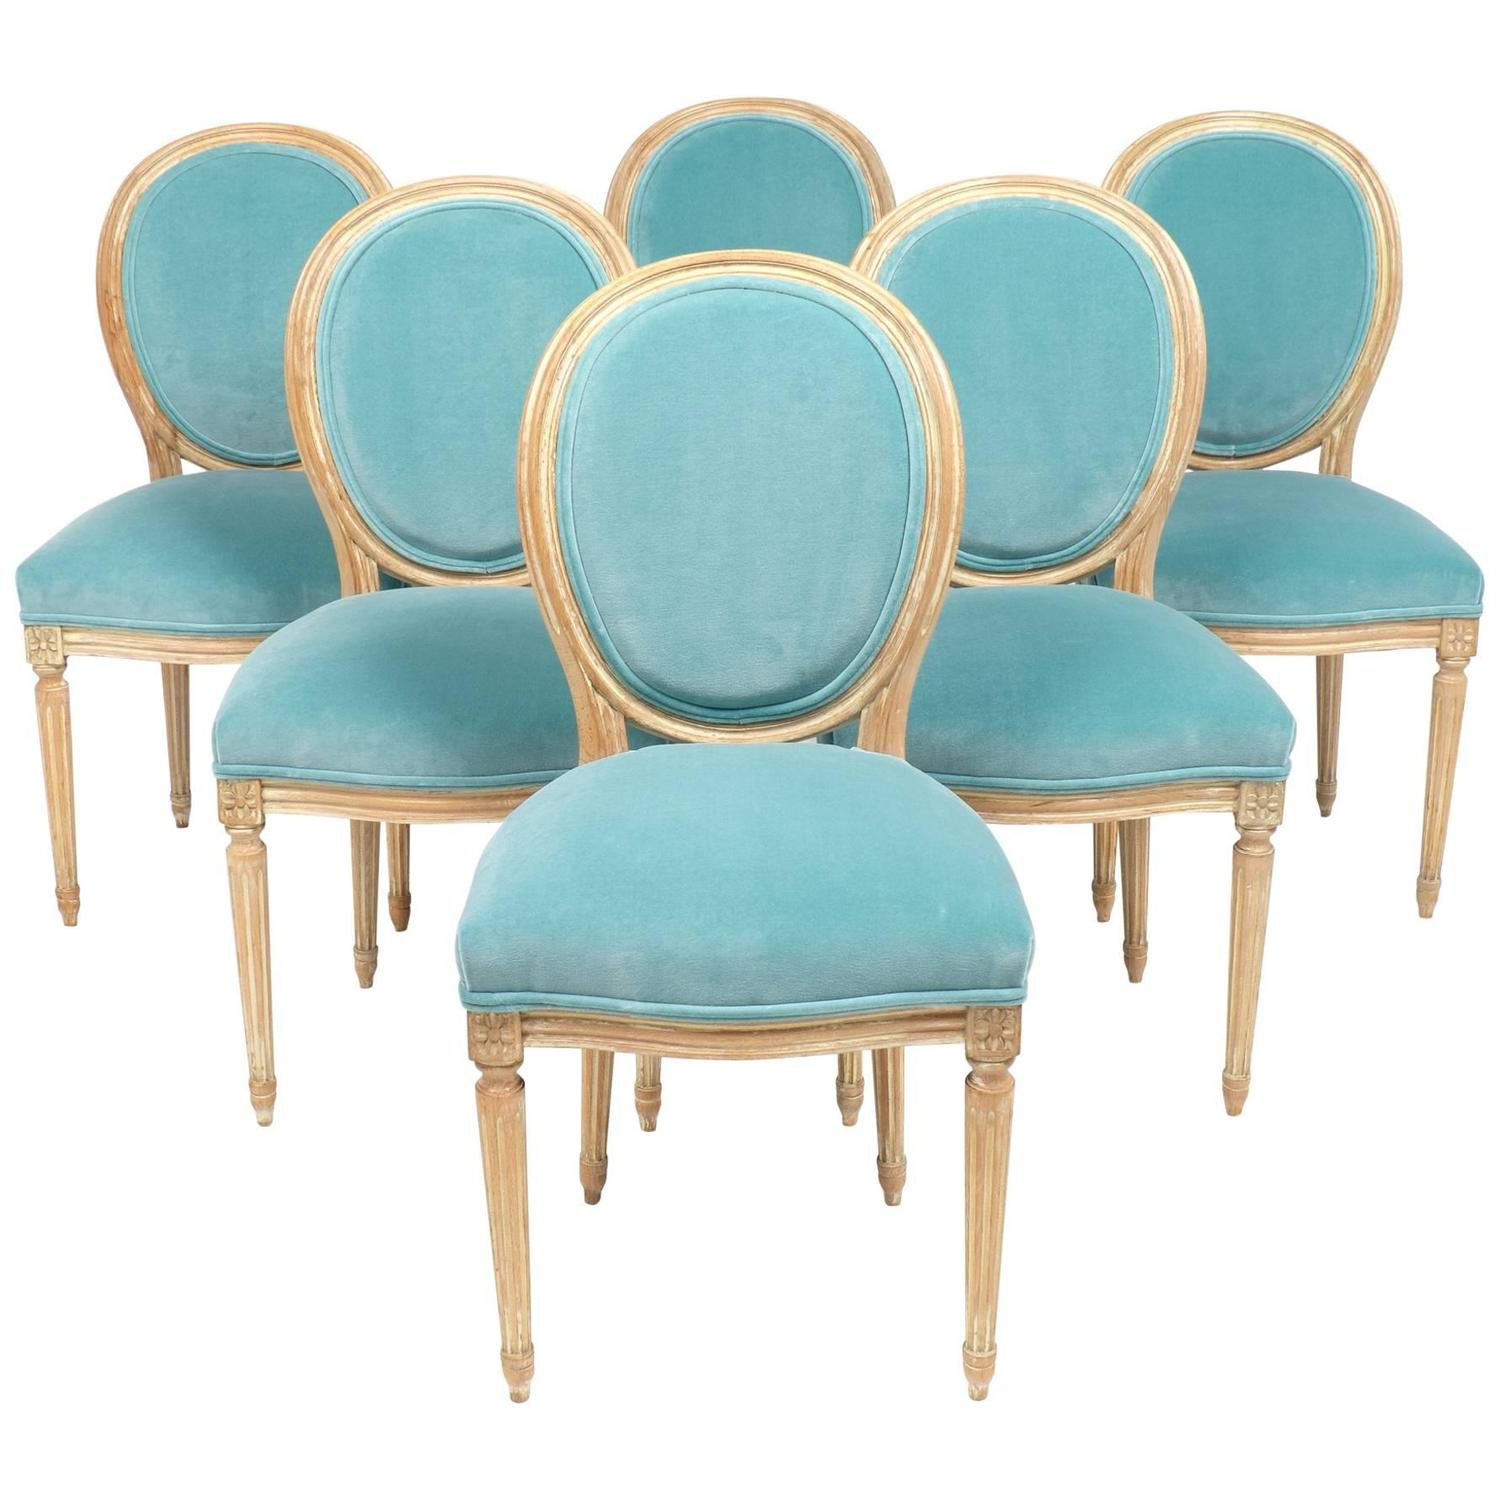 Antique Louis XVI Medallion Back Dining Chairs at 1stdibs